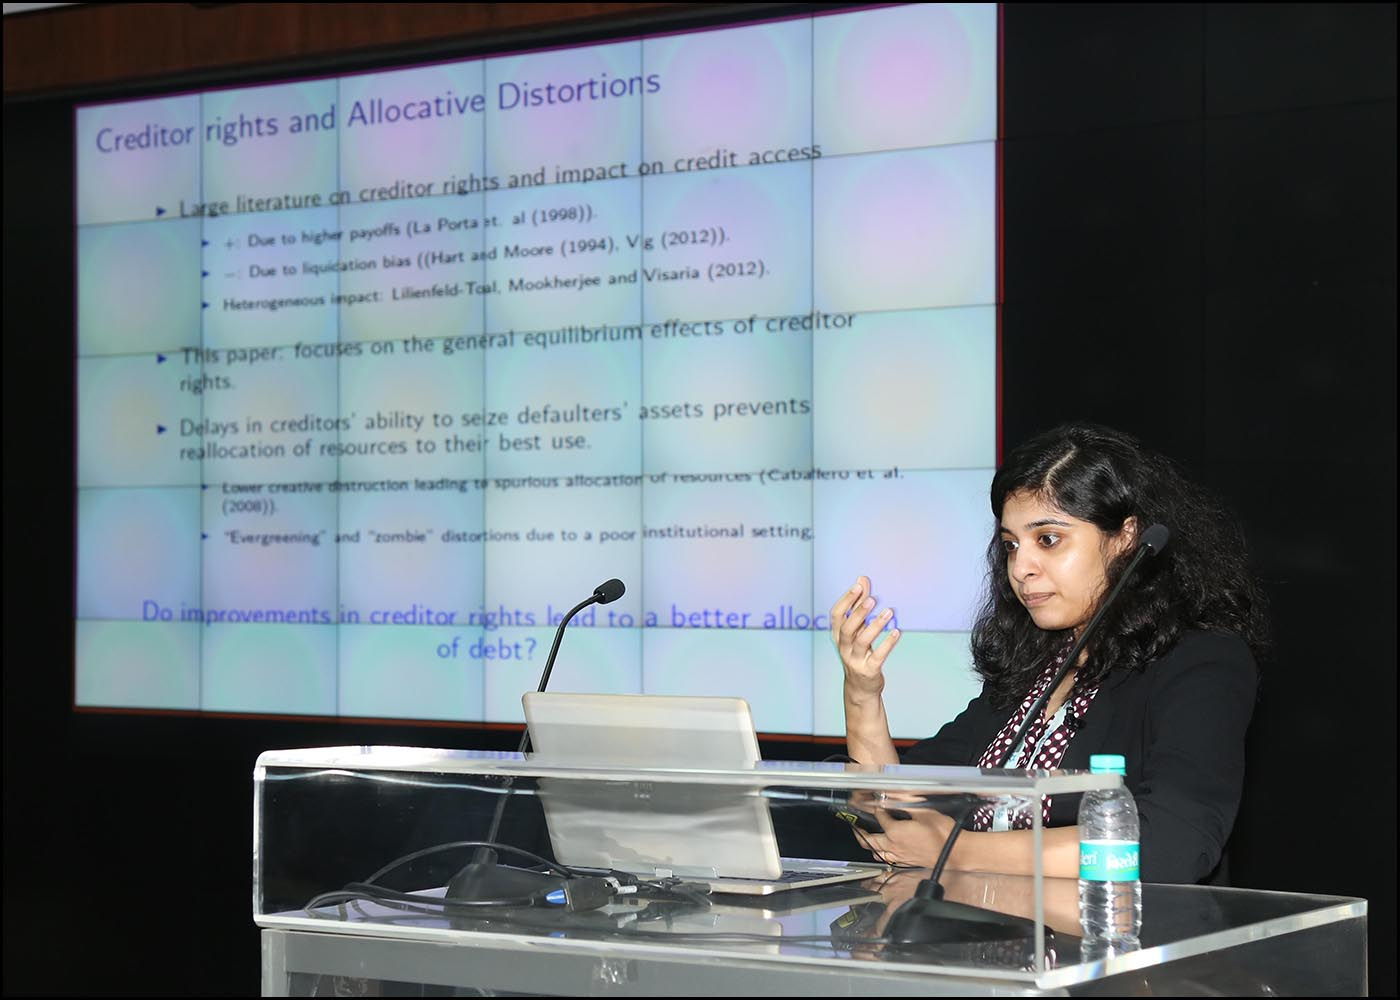 Dr. Nirupama Kulkarni, Research Director, CAFRAL